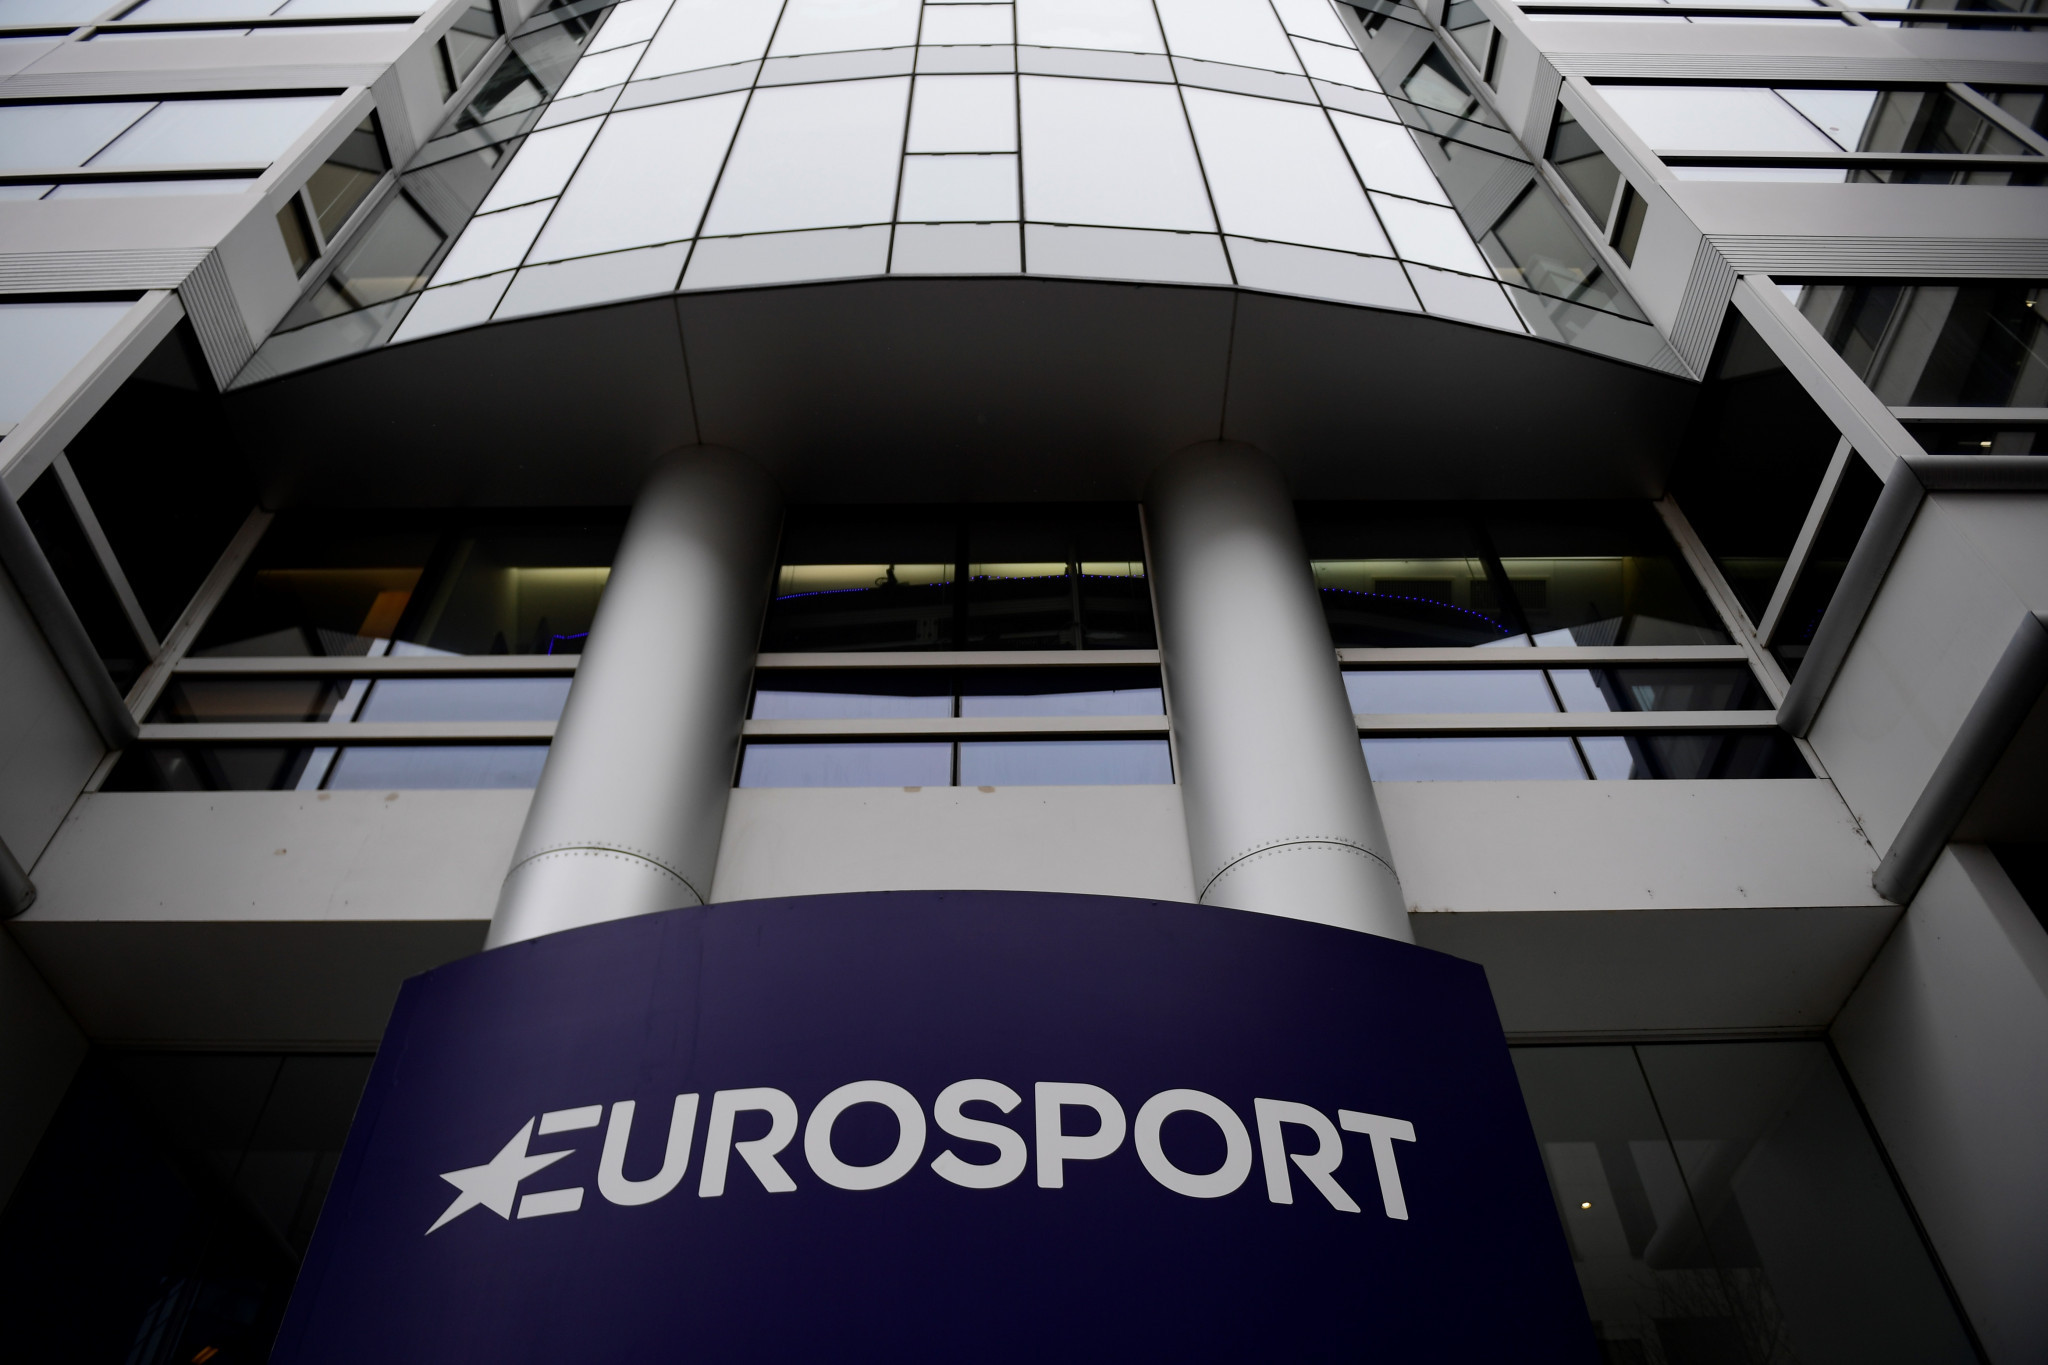 Eurosport and Discovery Communications hit record levels of viewers during Pyeongchang 2018